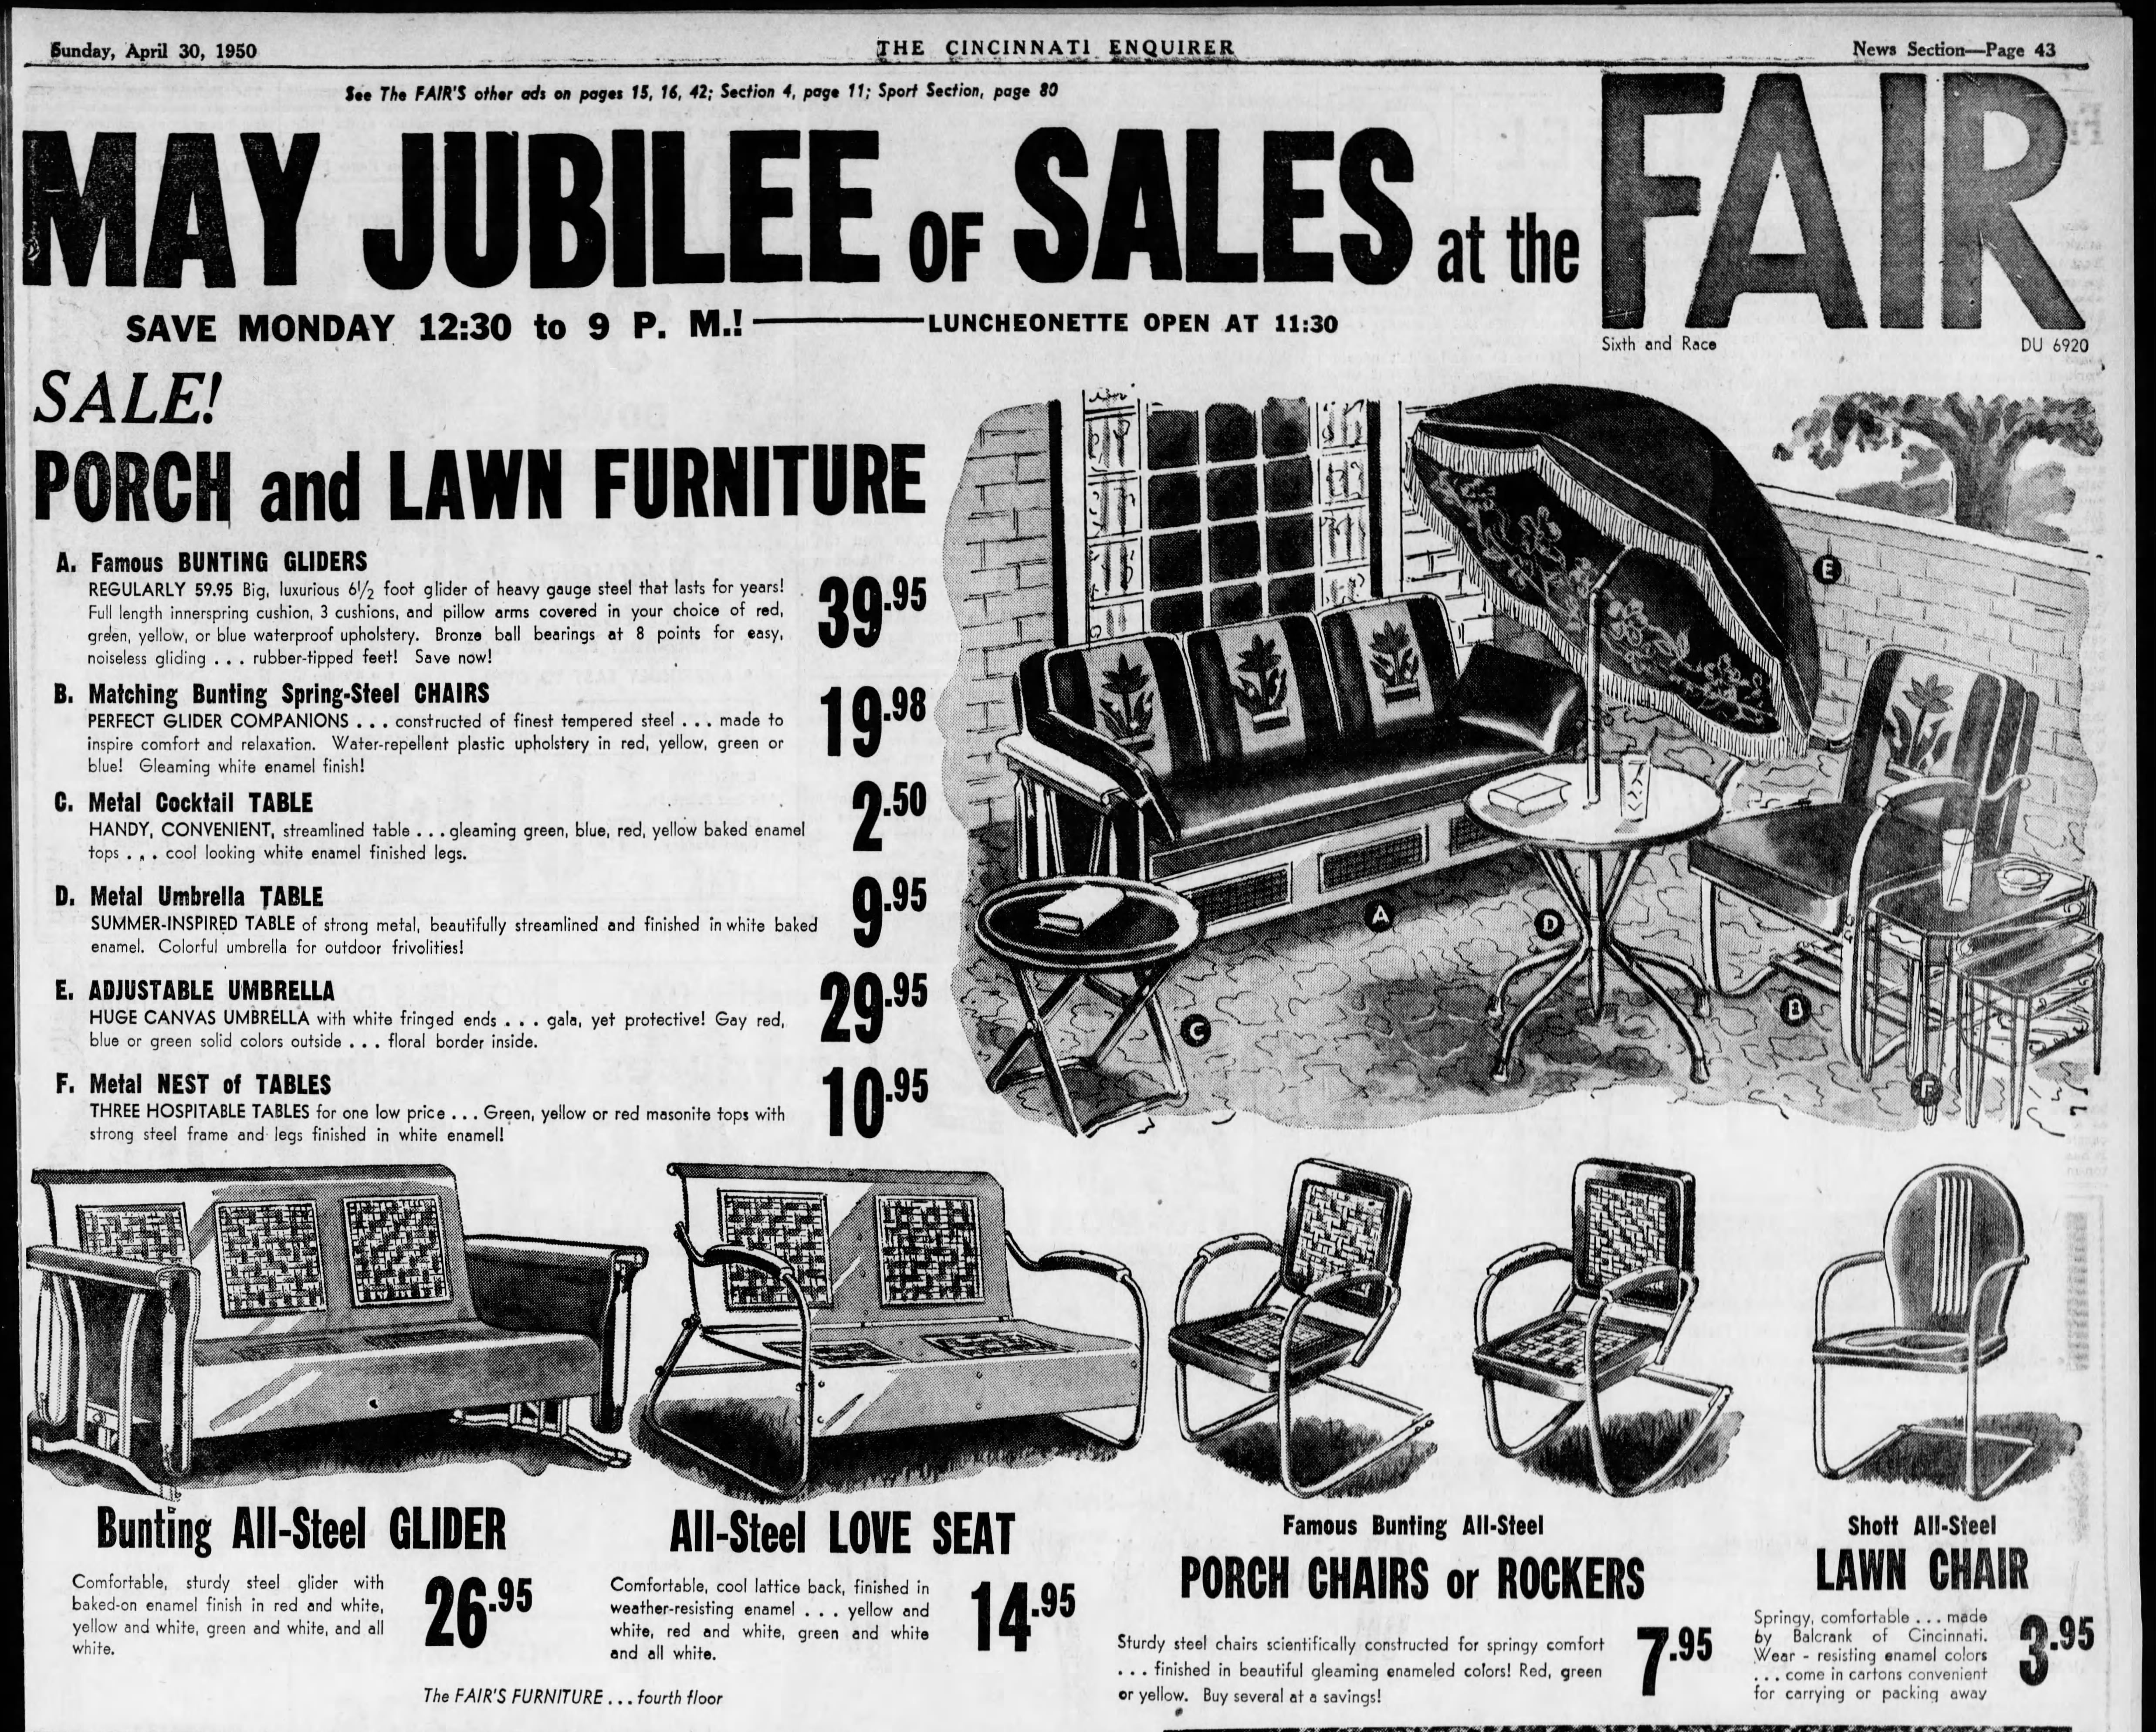 Bunting Metal Porch Glider newspaper advertisement from April 30